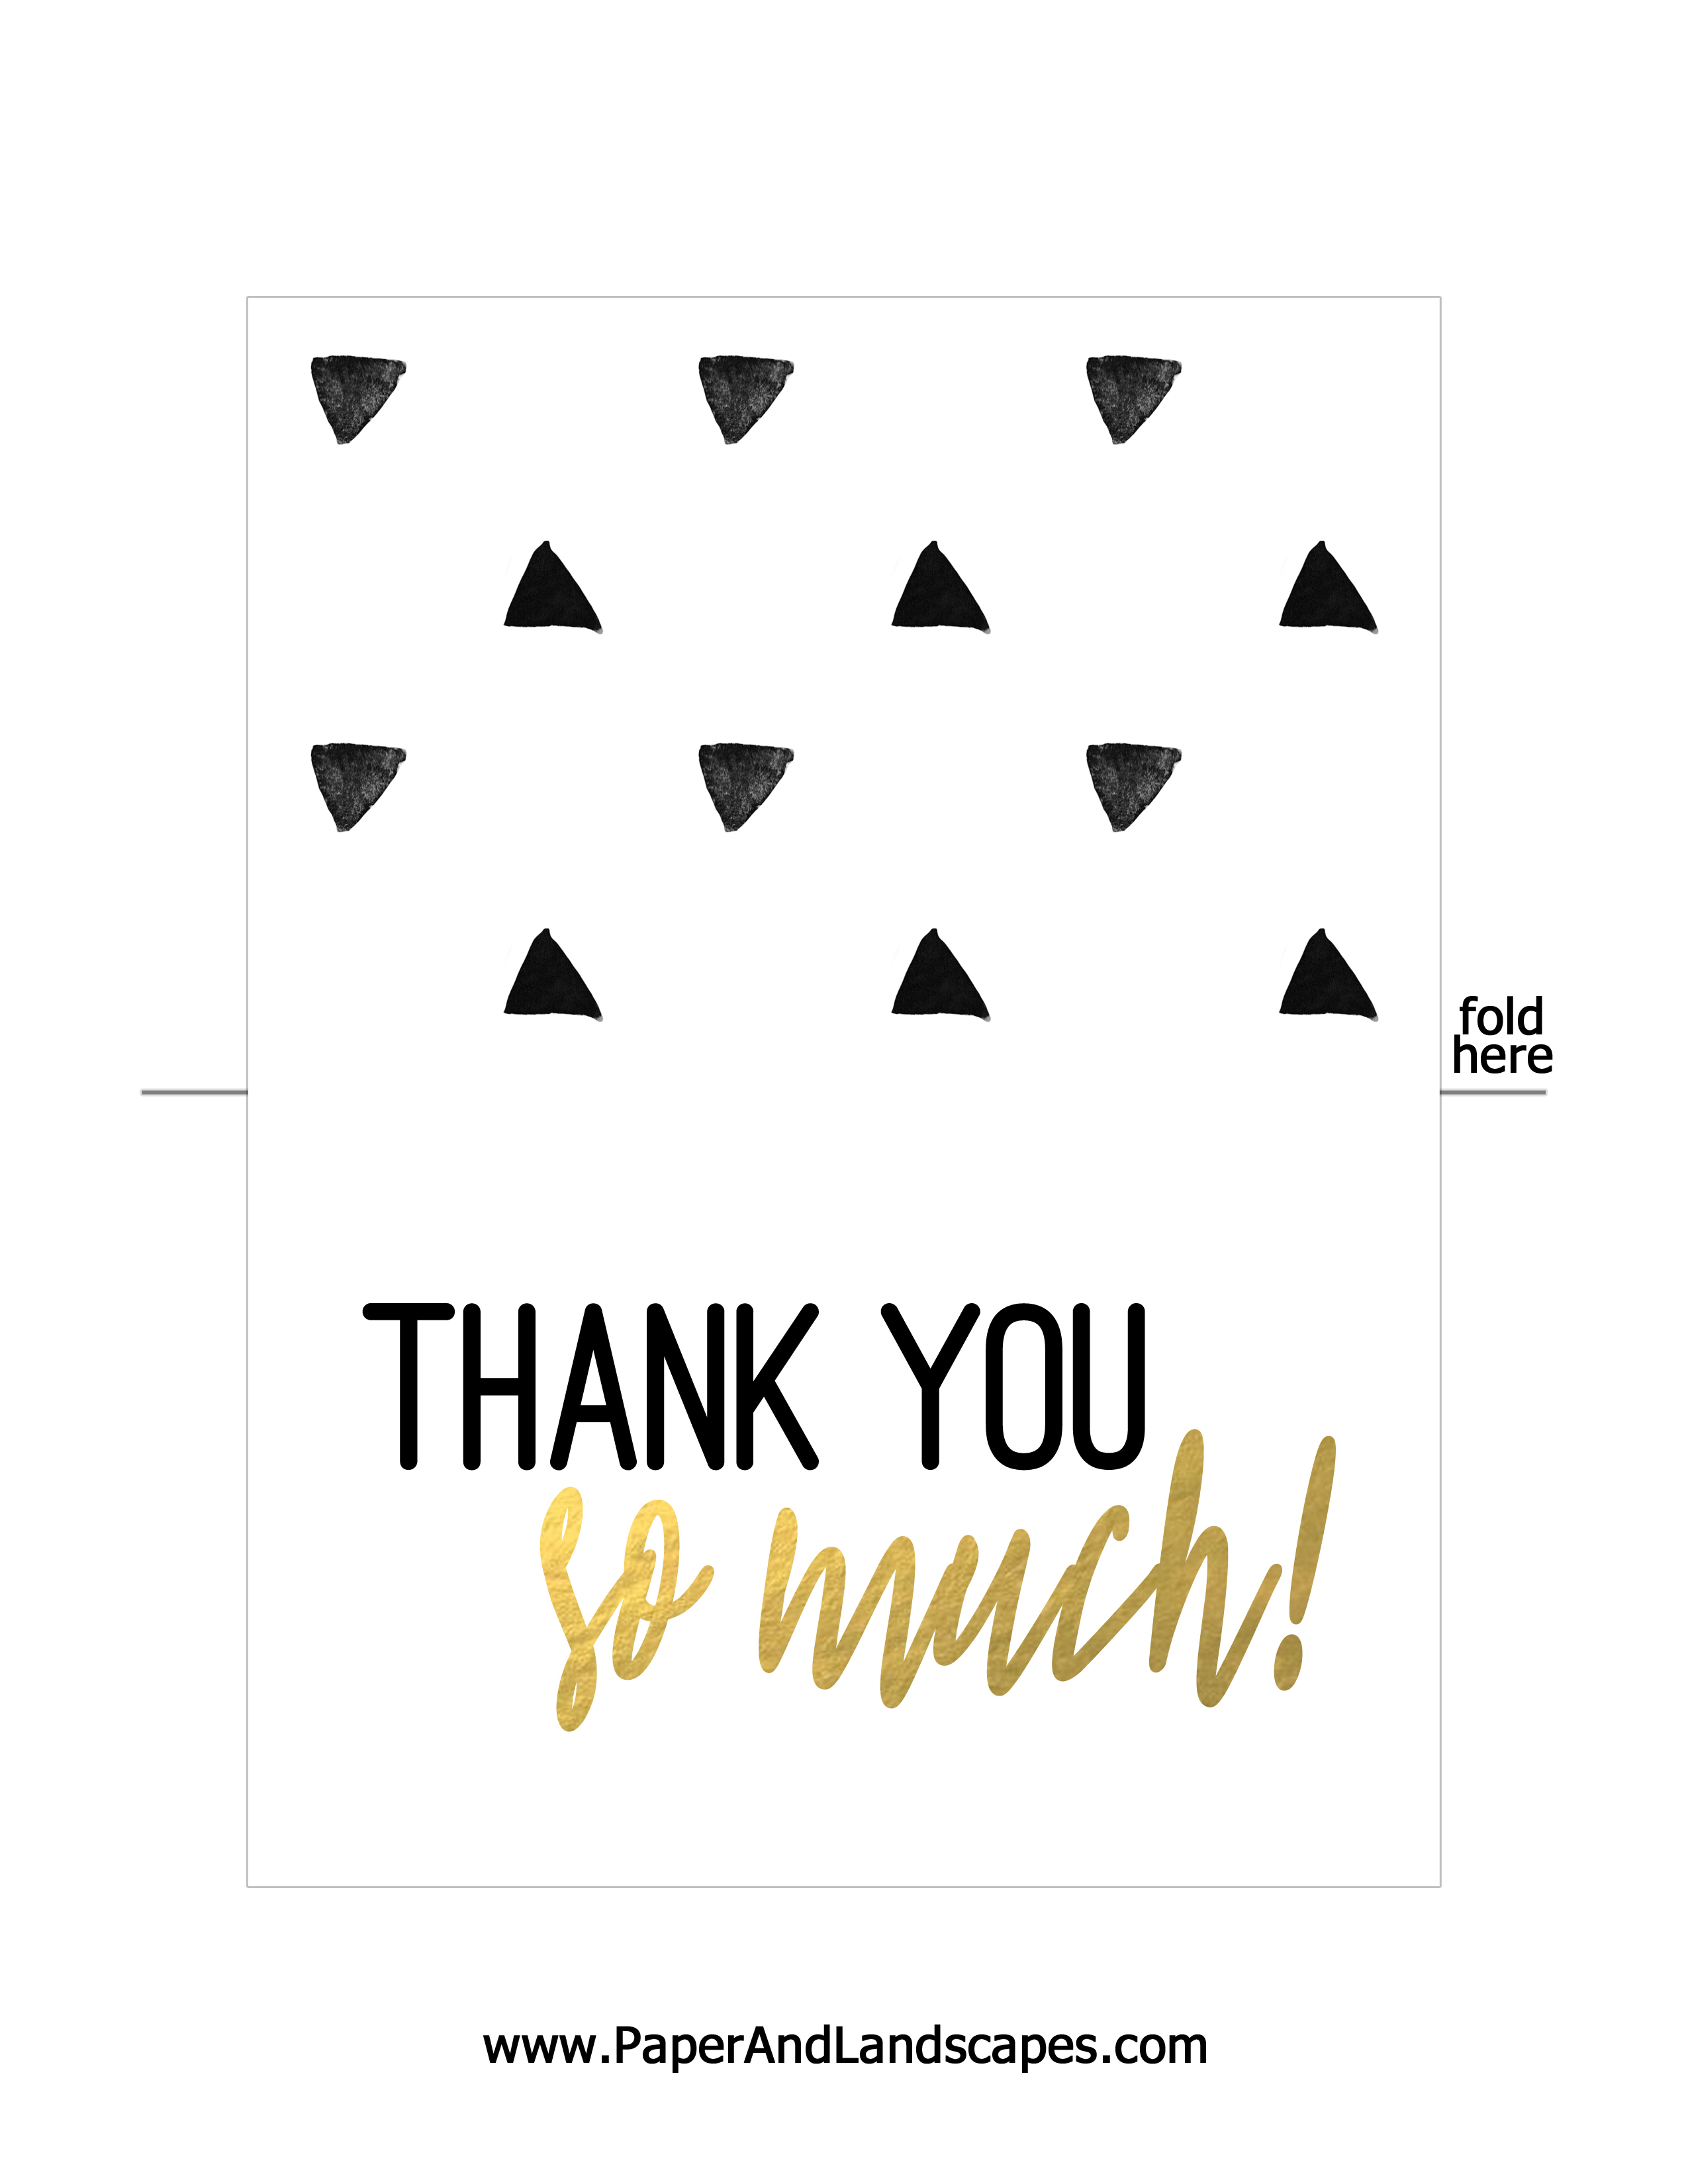 Free Printable Thank You Cards - Paper And Landscapes - Free Printable Thank You Notes